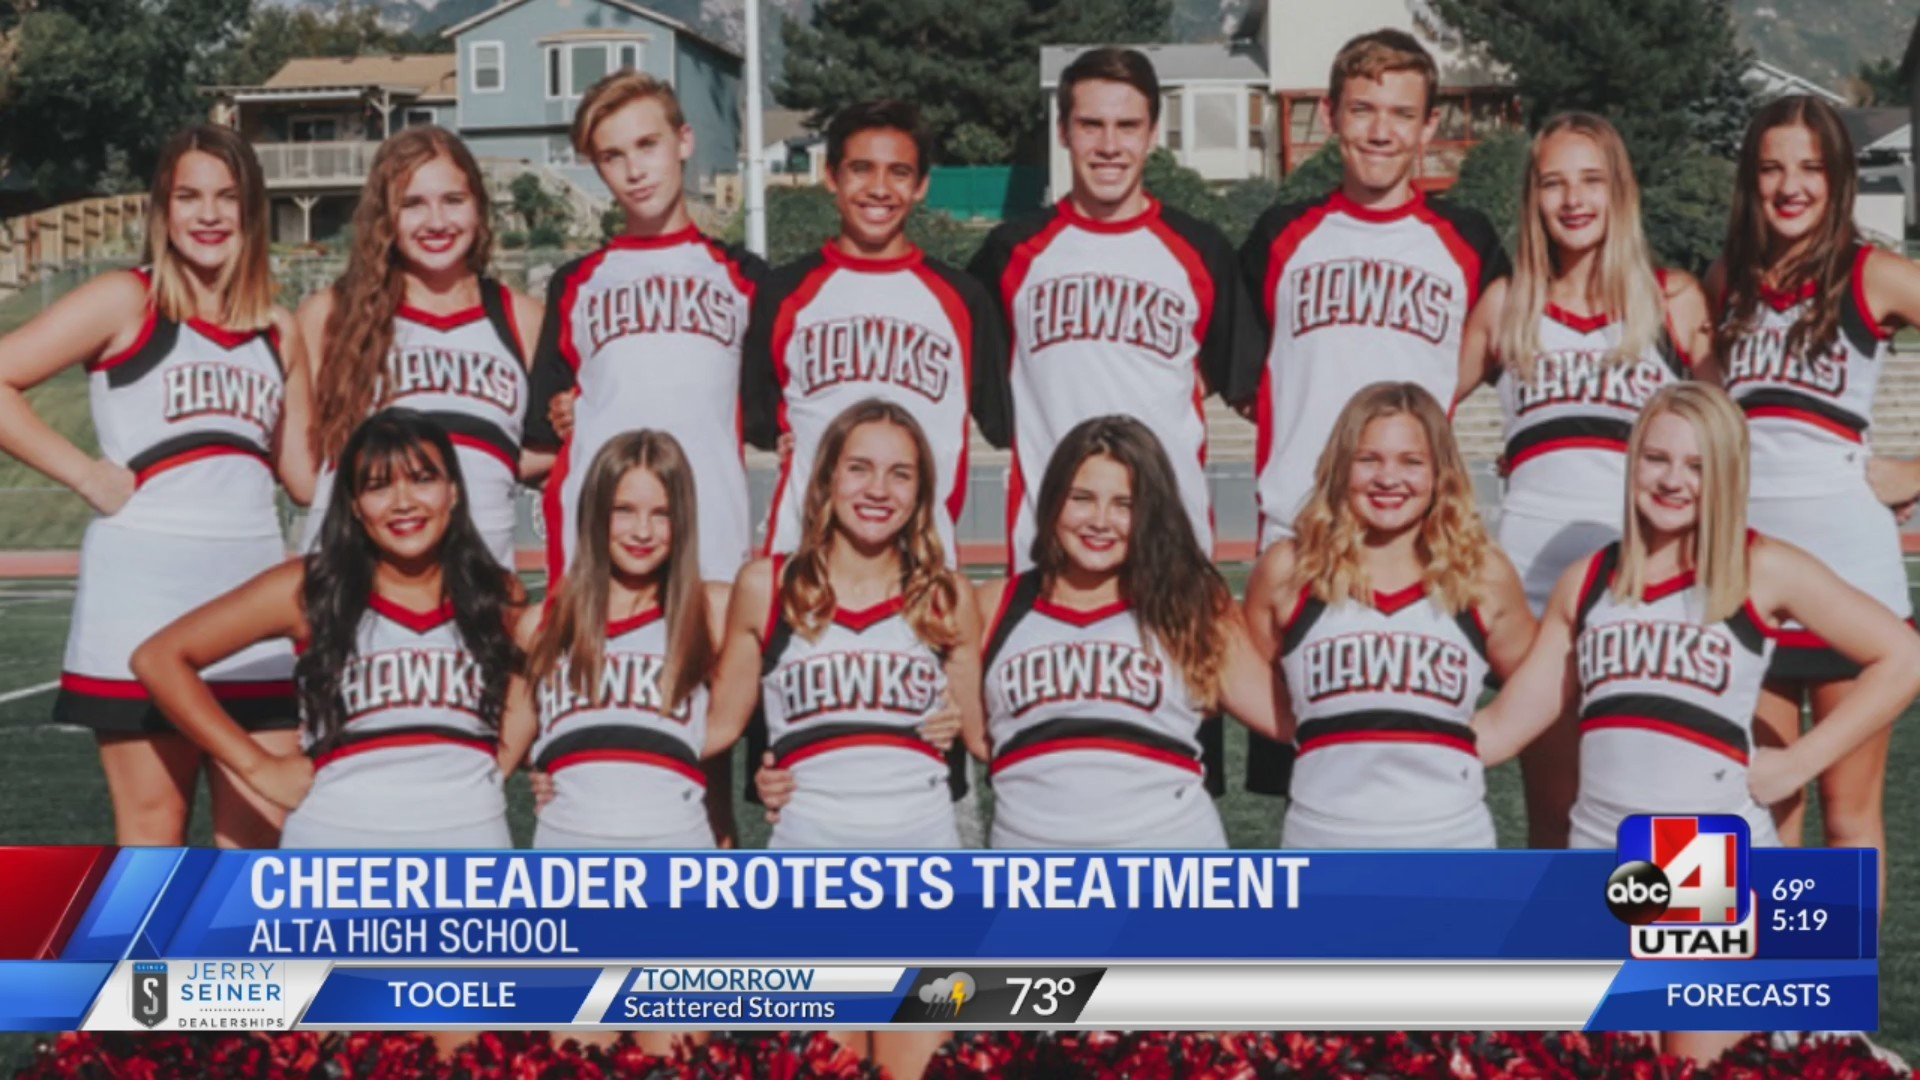 Alta High cheerleader says he was threatened by coaches for kneeling during national anthem